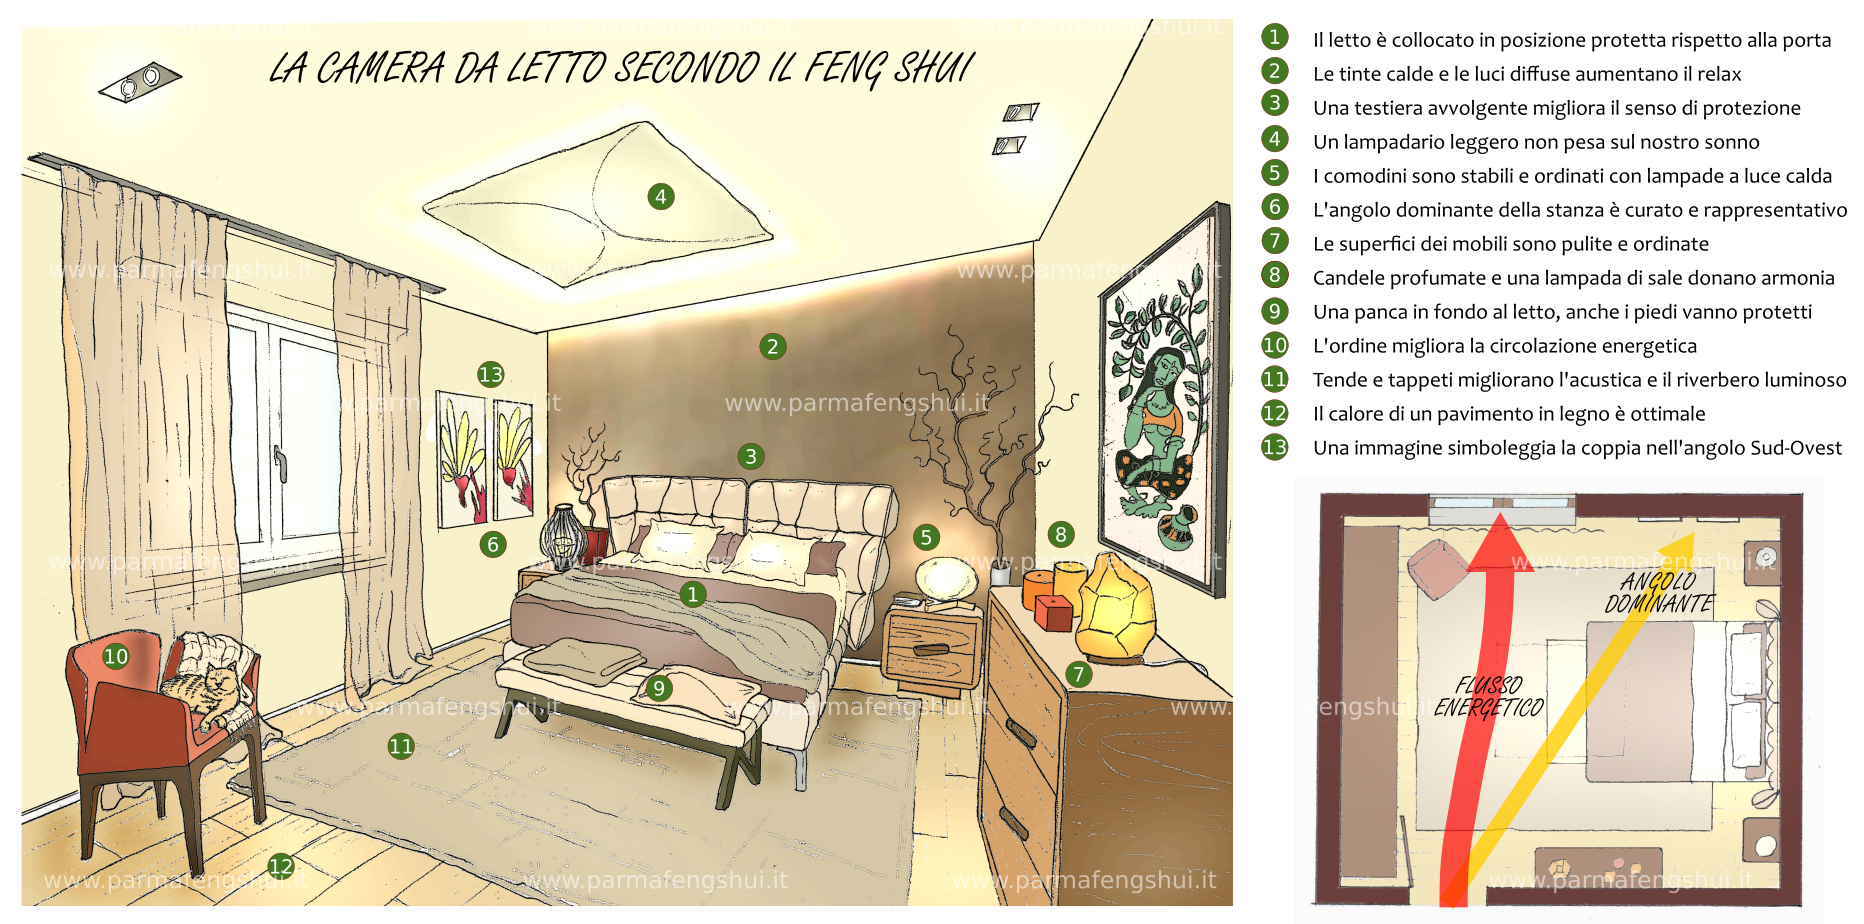 Stunning camera da letto feng shui gallery house design - Feng shui camera da letto orientamento ...